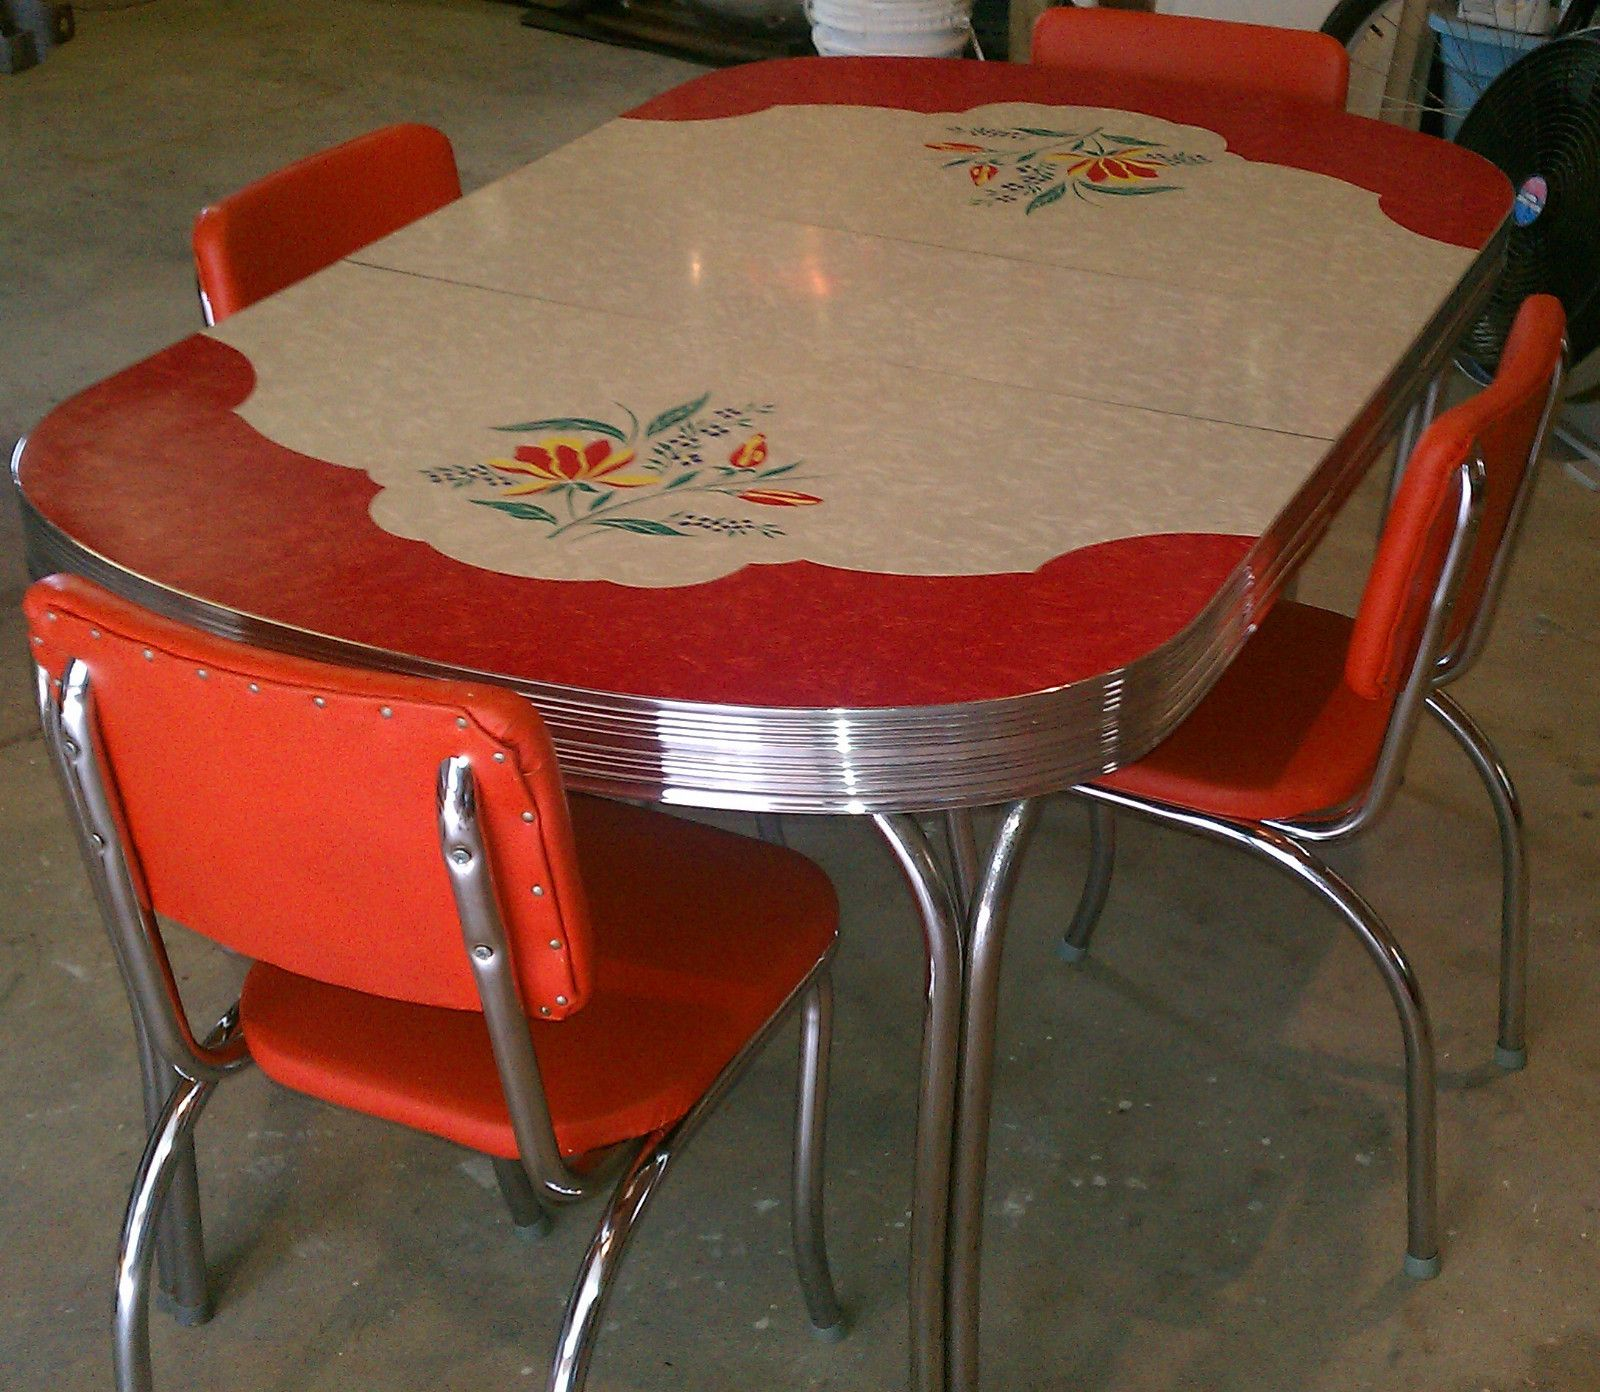 vintage kitchen tables Love this table Vintage Kitchen Formica Table 4 Chairs Chrome Orange Red White Gray